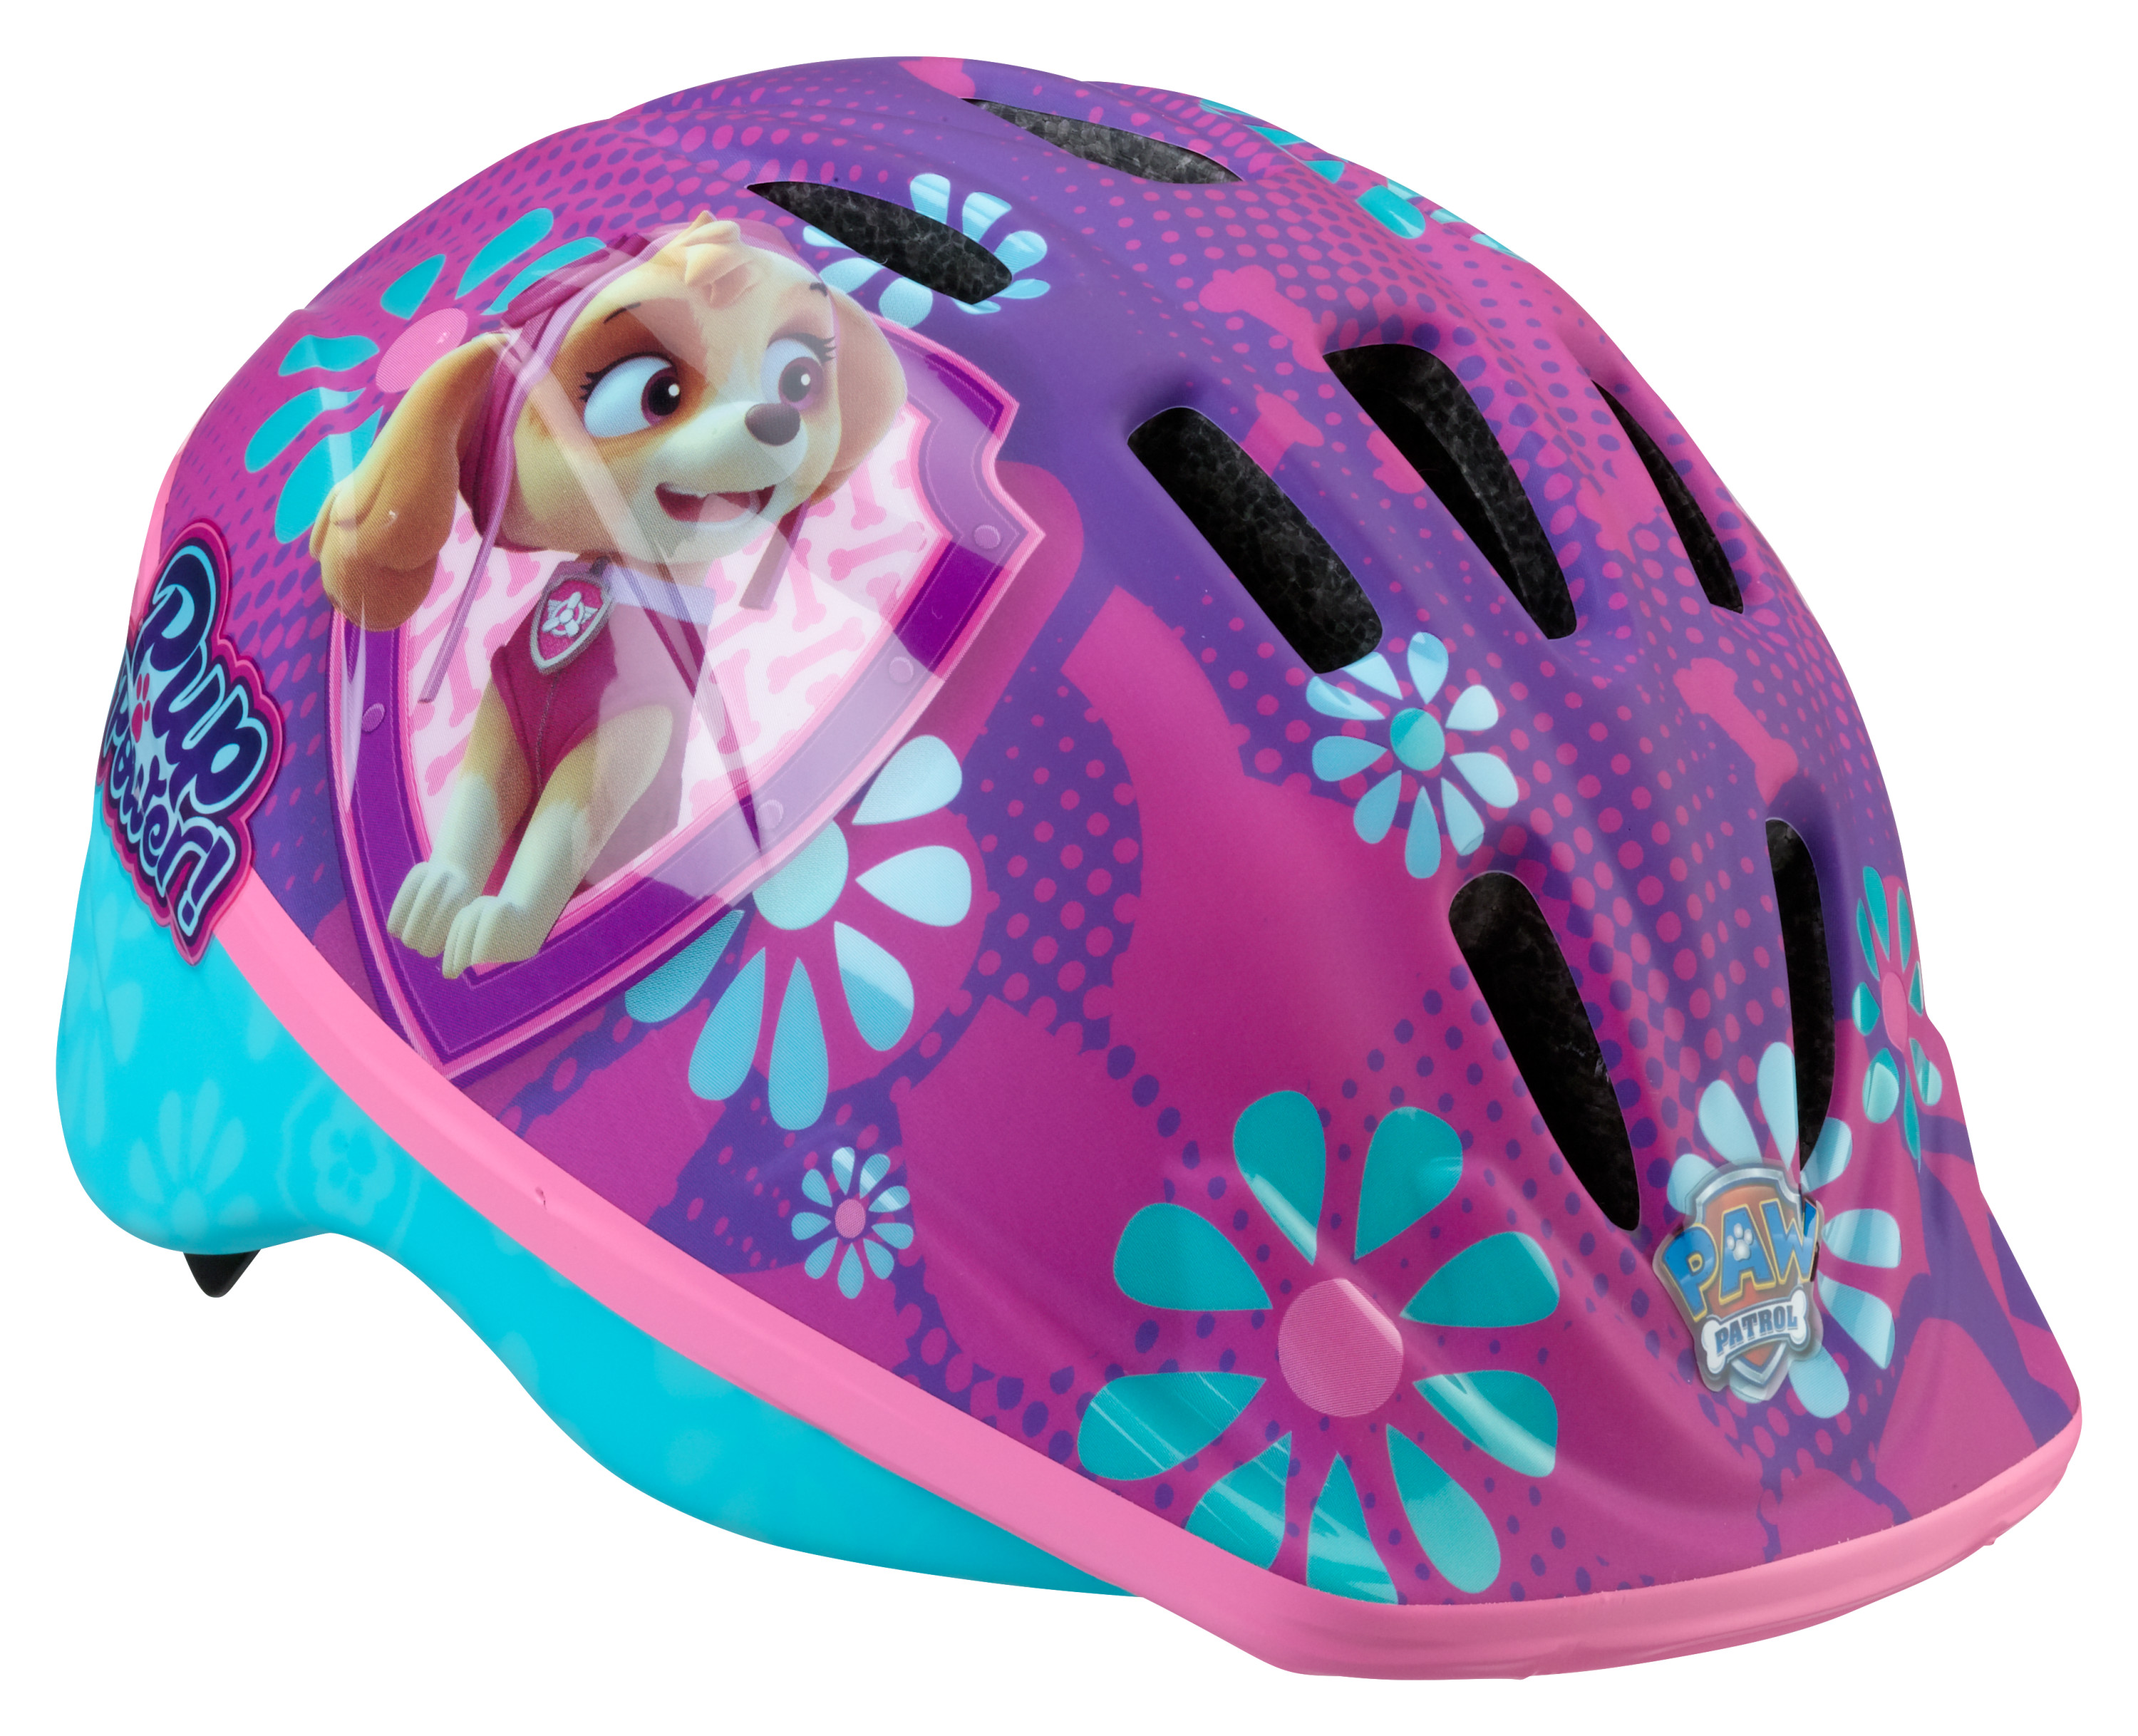 2012 By Spin Master Paw Patrol Bike Helmet AGES 3 Toddler BRAND NEW